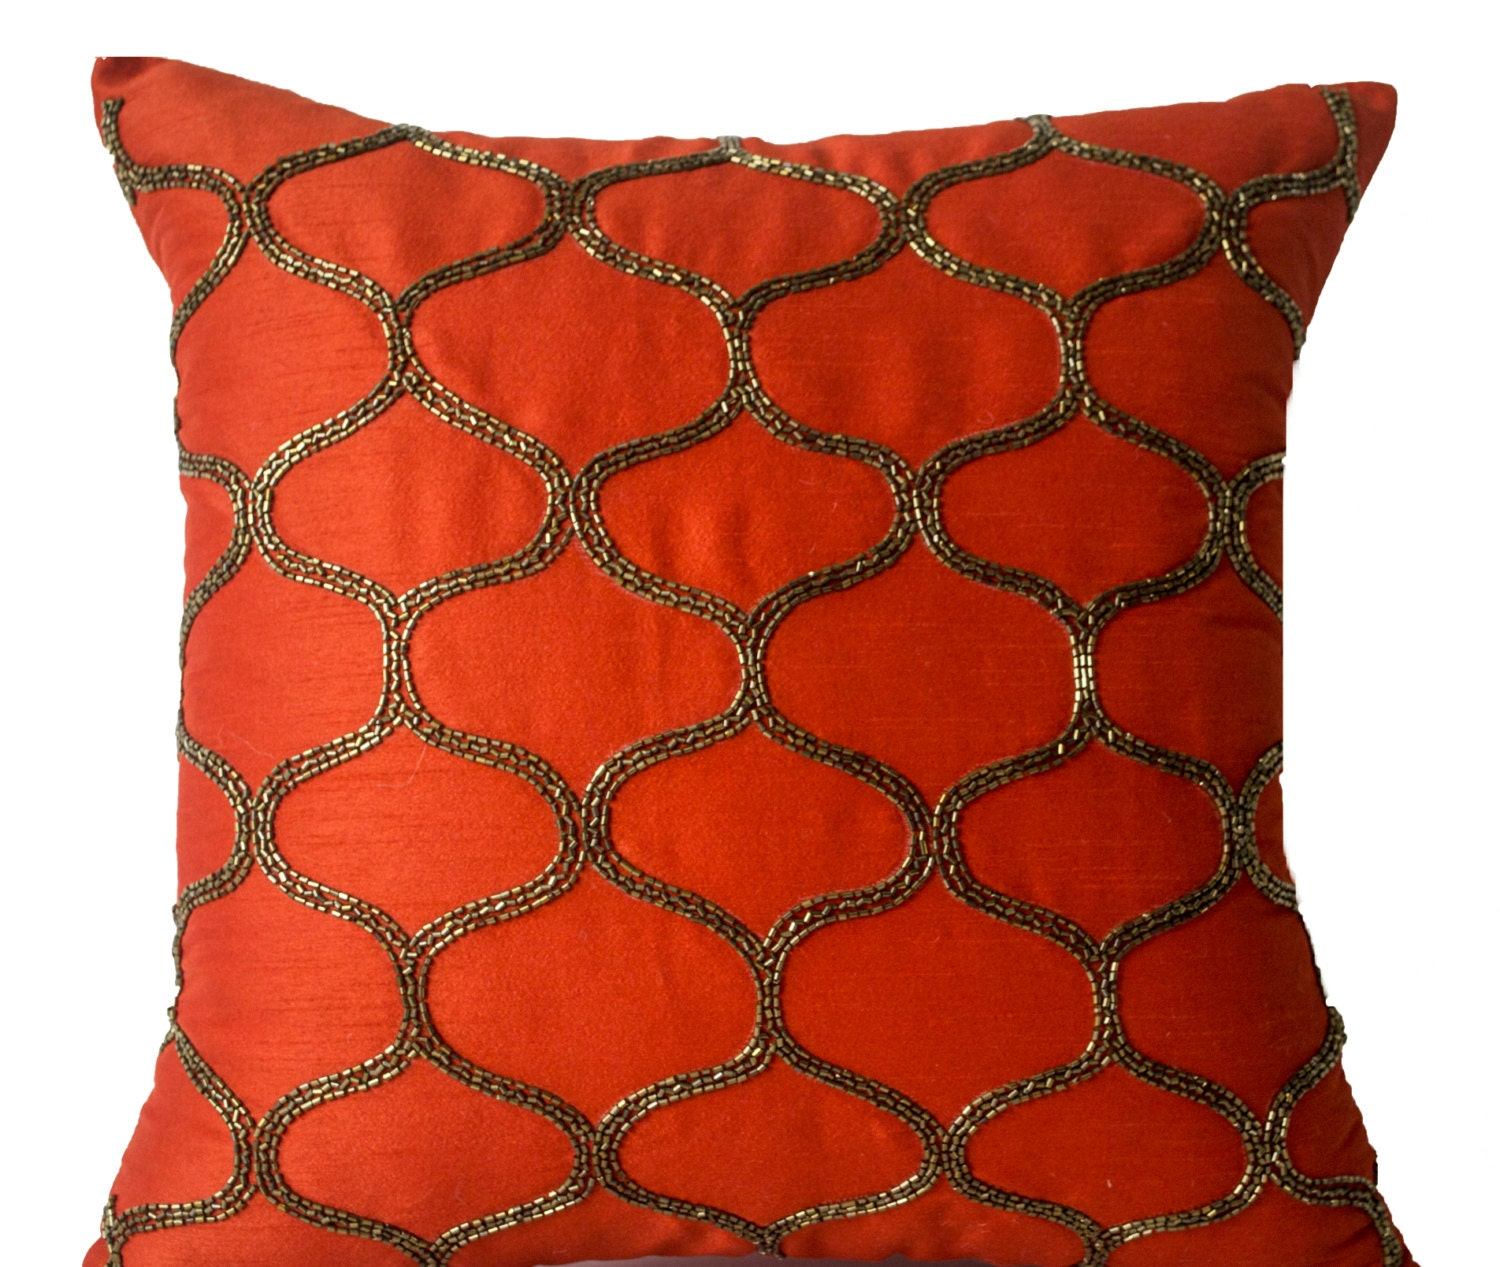 Orange Decorative Pillows Couch : Orange Decorative Pillow Orange Pillow Orange Silk Pillow